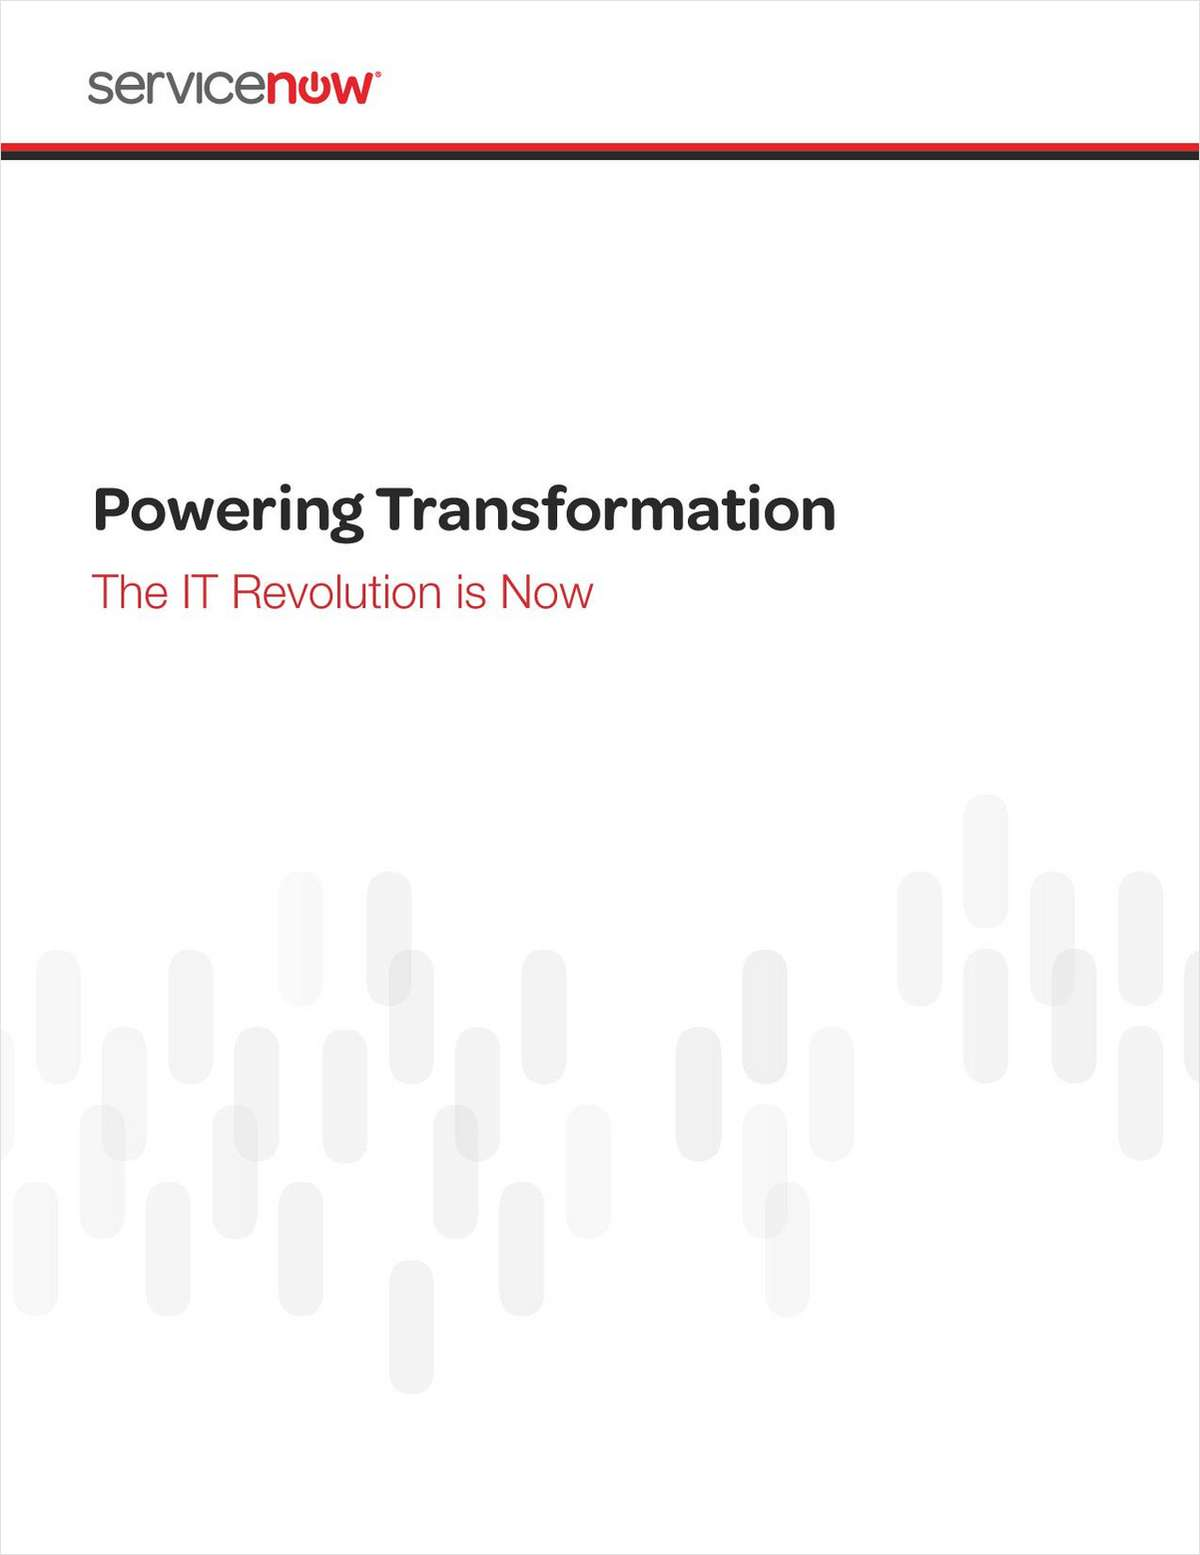 Powering Transformation: The IT Revolution is Now